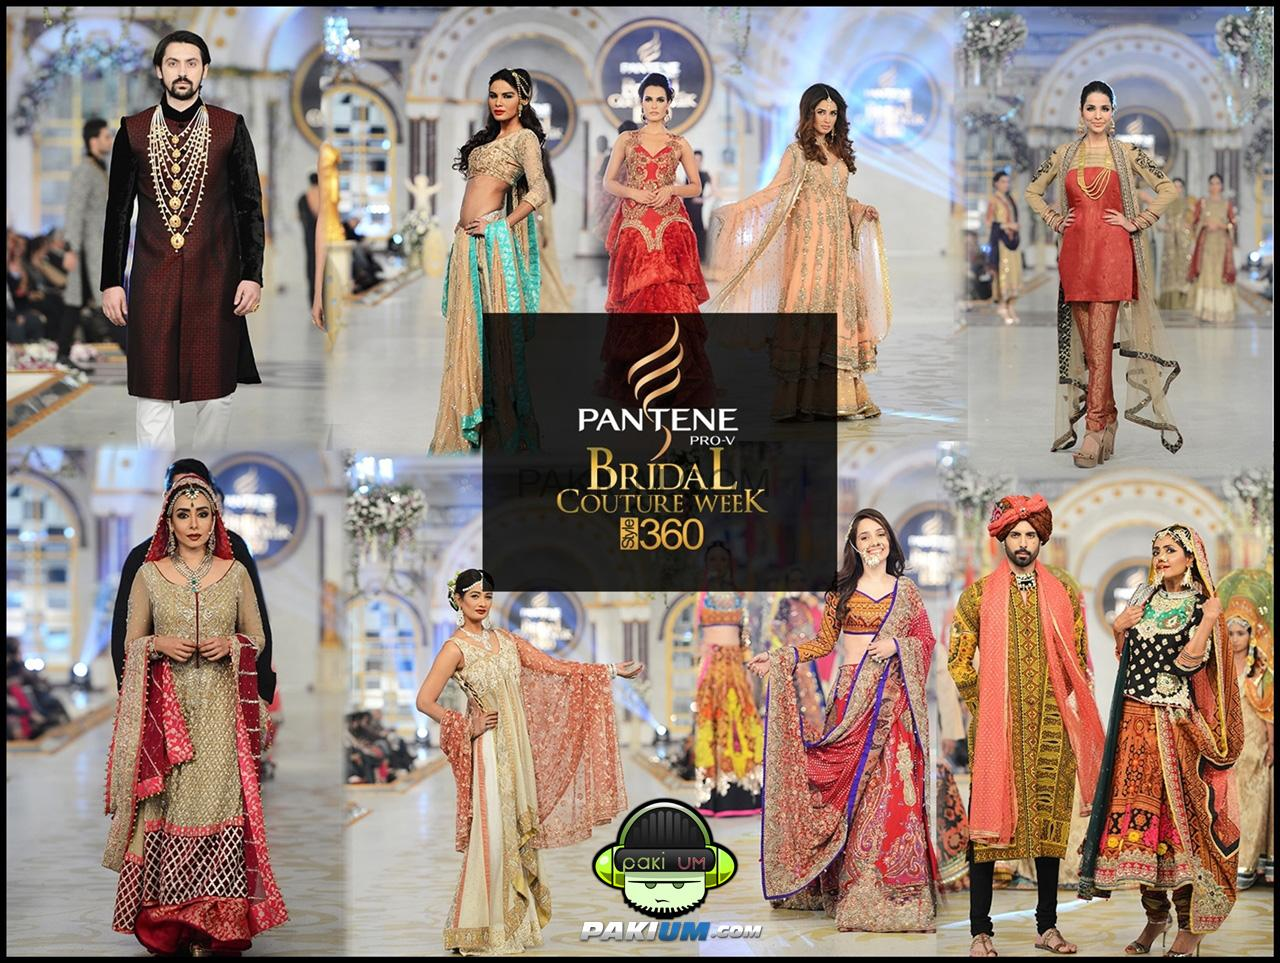 8th-pantene-bridal-couture-week-pbcw-2014